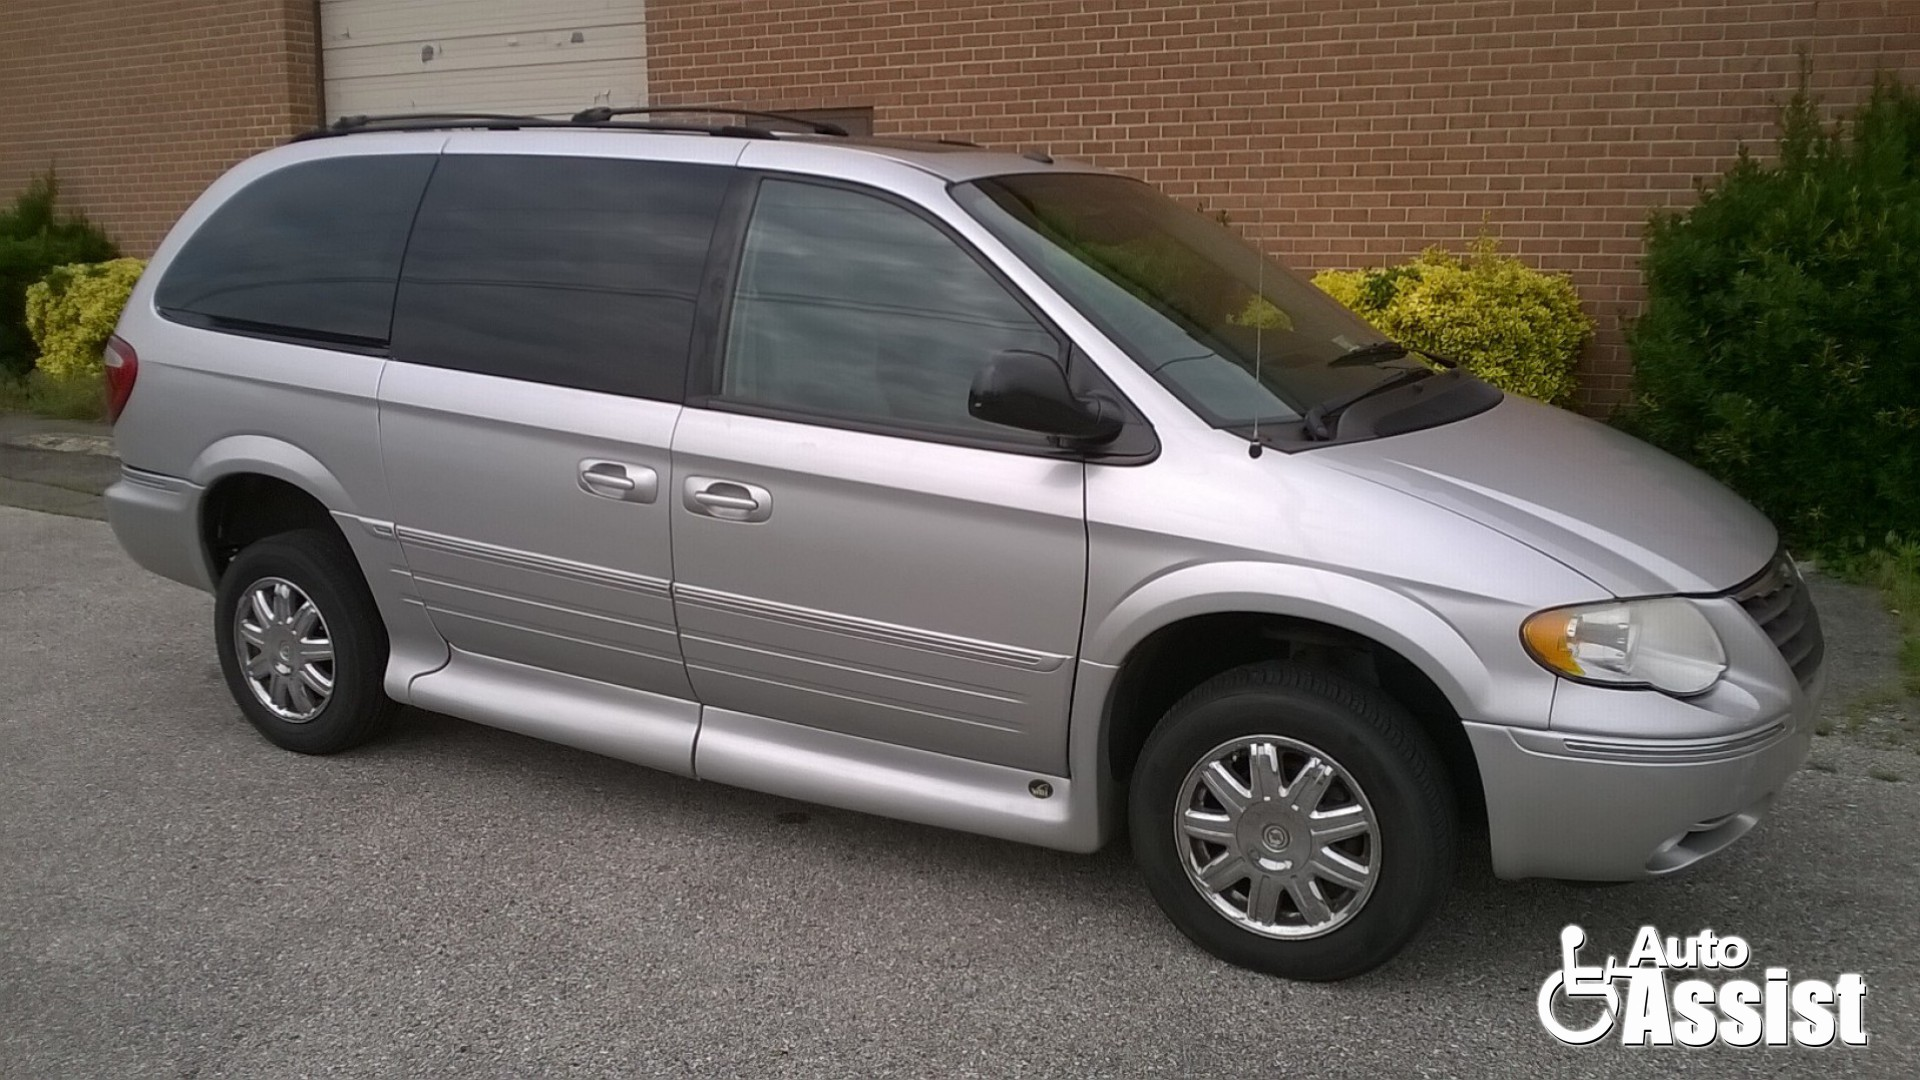 large silver and mini chrysler research town lx touring country van bright groovecar metallic composite